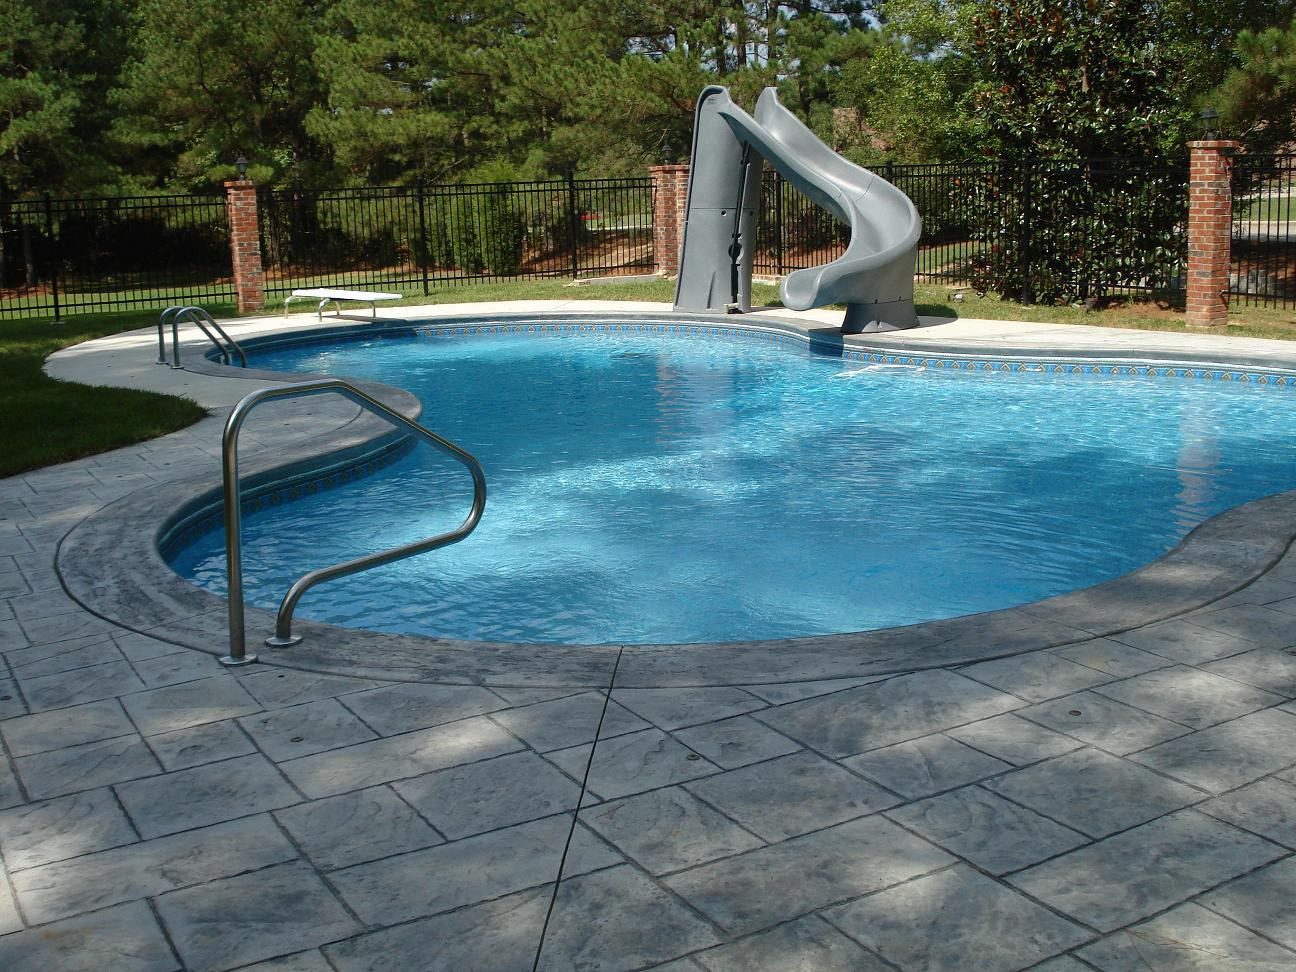 Fun of home pool slides backyard design ideas for Swimming pools for homes